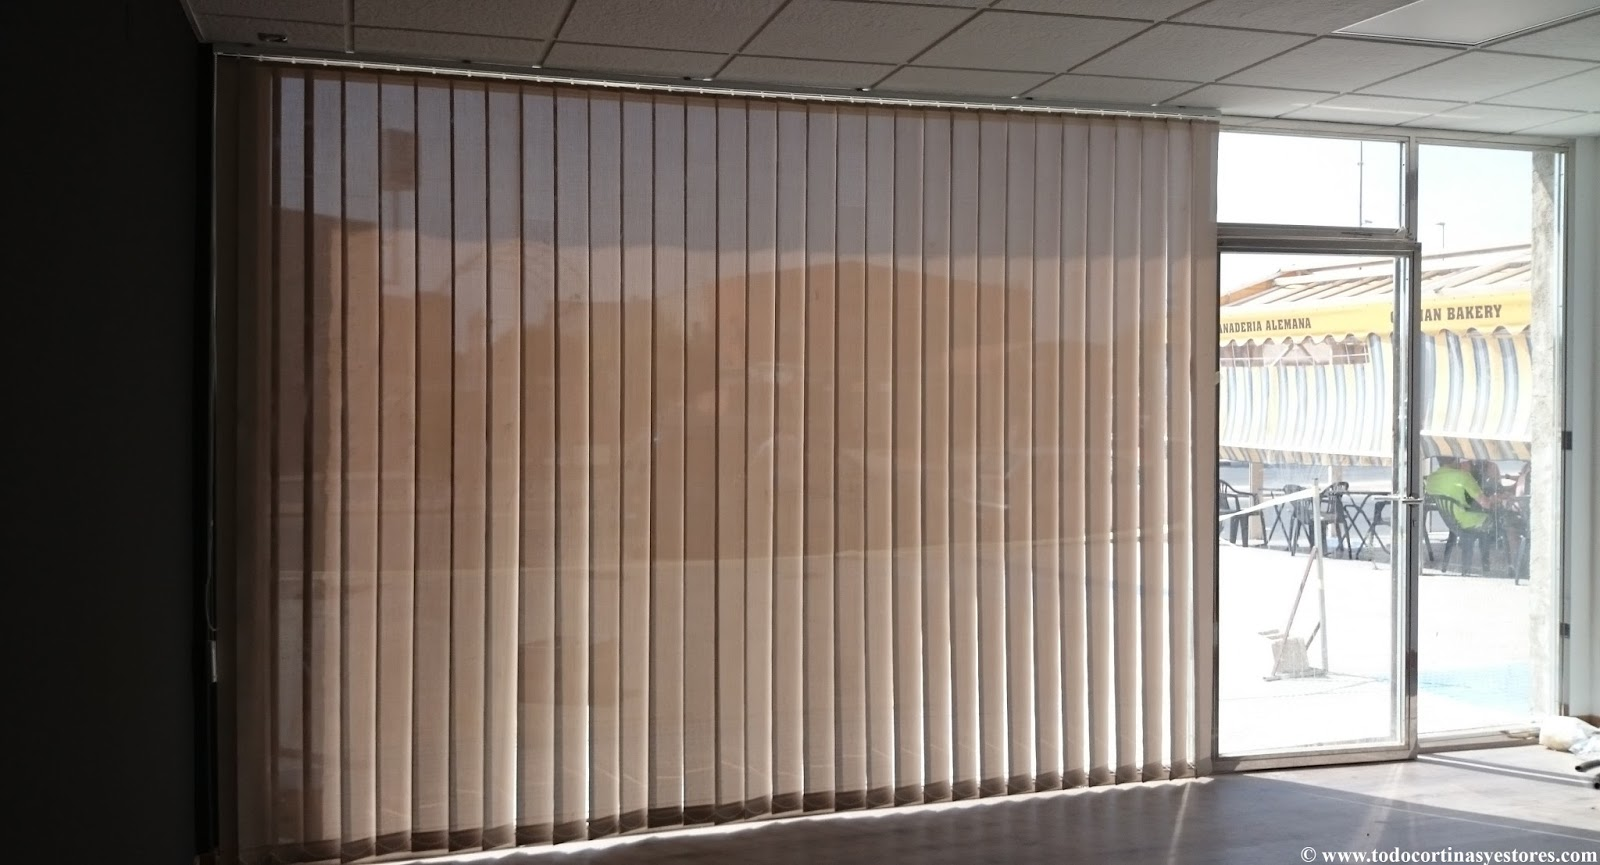 Cortinas enrollables cortinas verticales estores cortinas - Cortinas estores enrollables ...